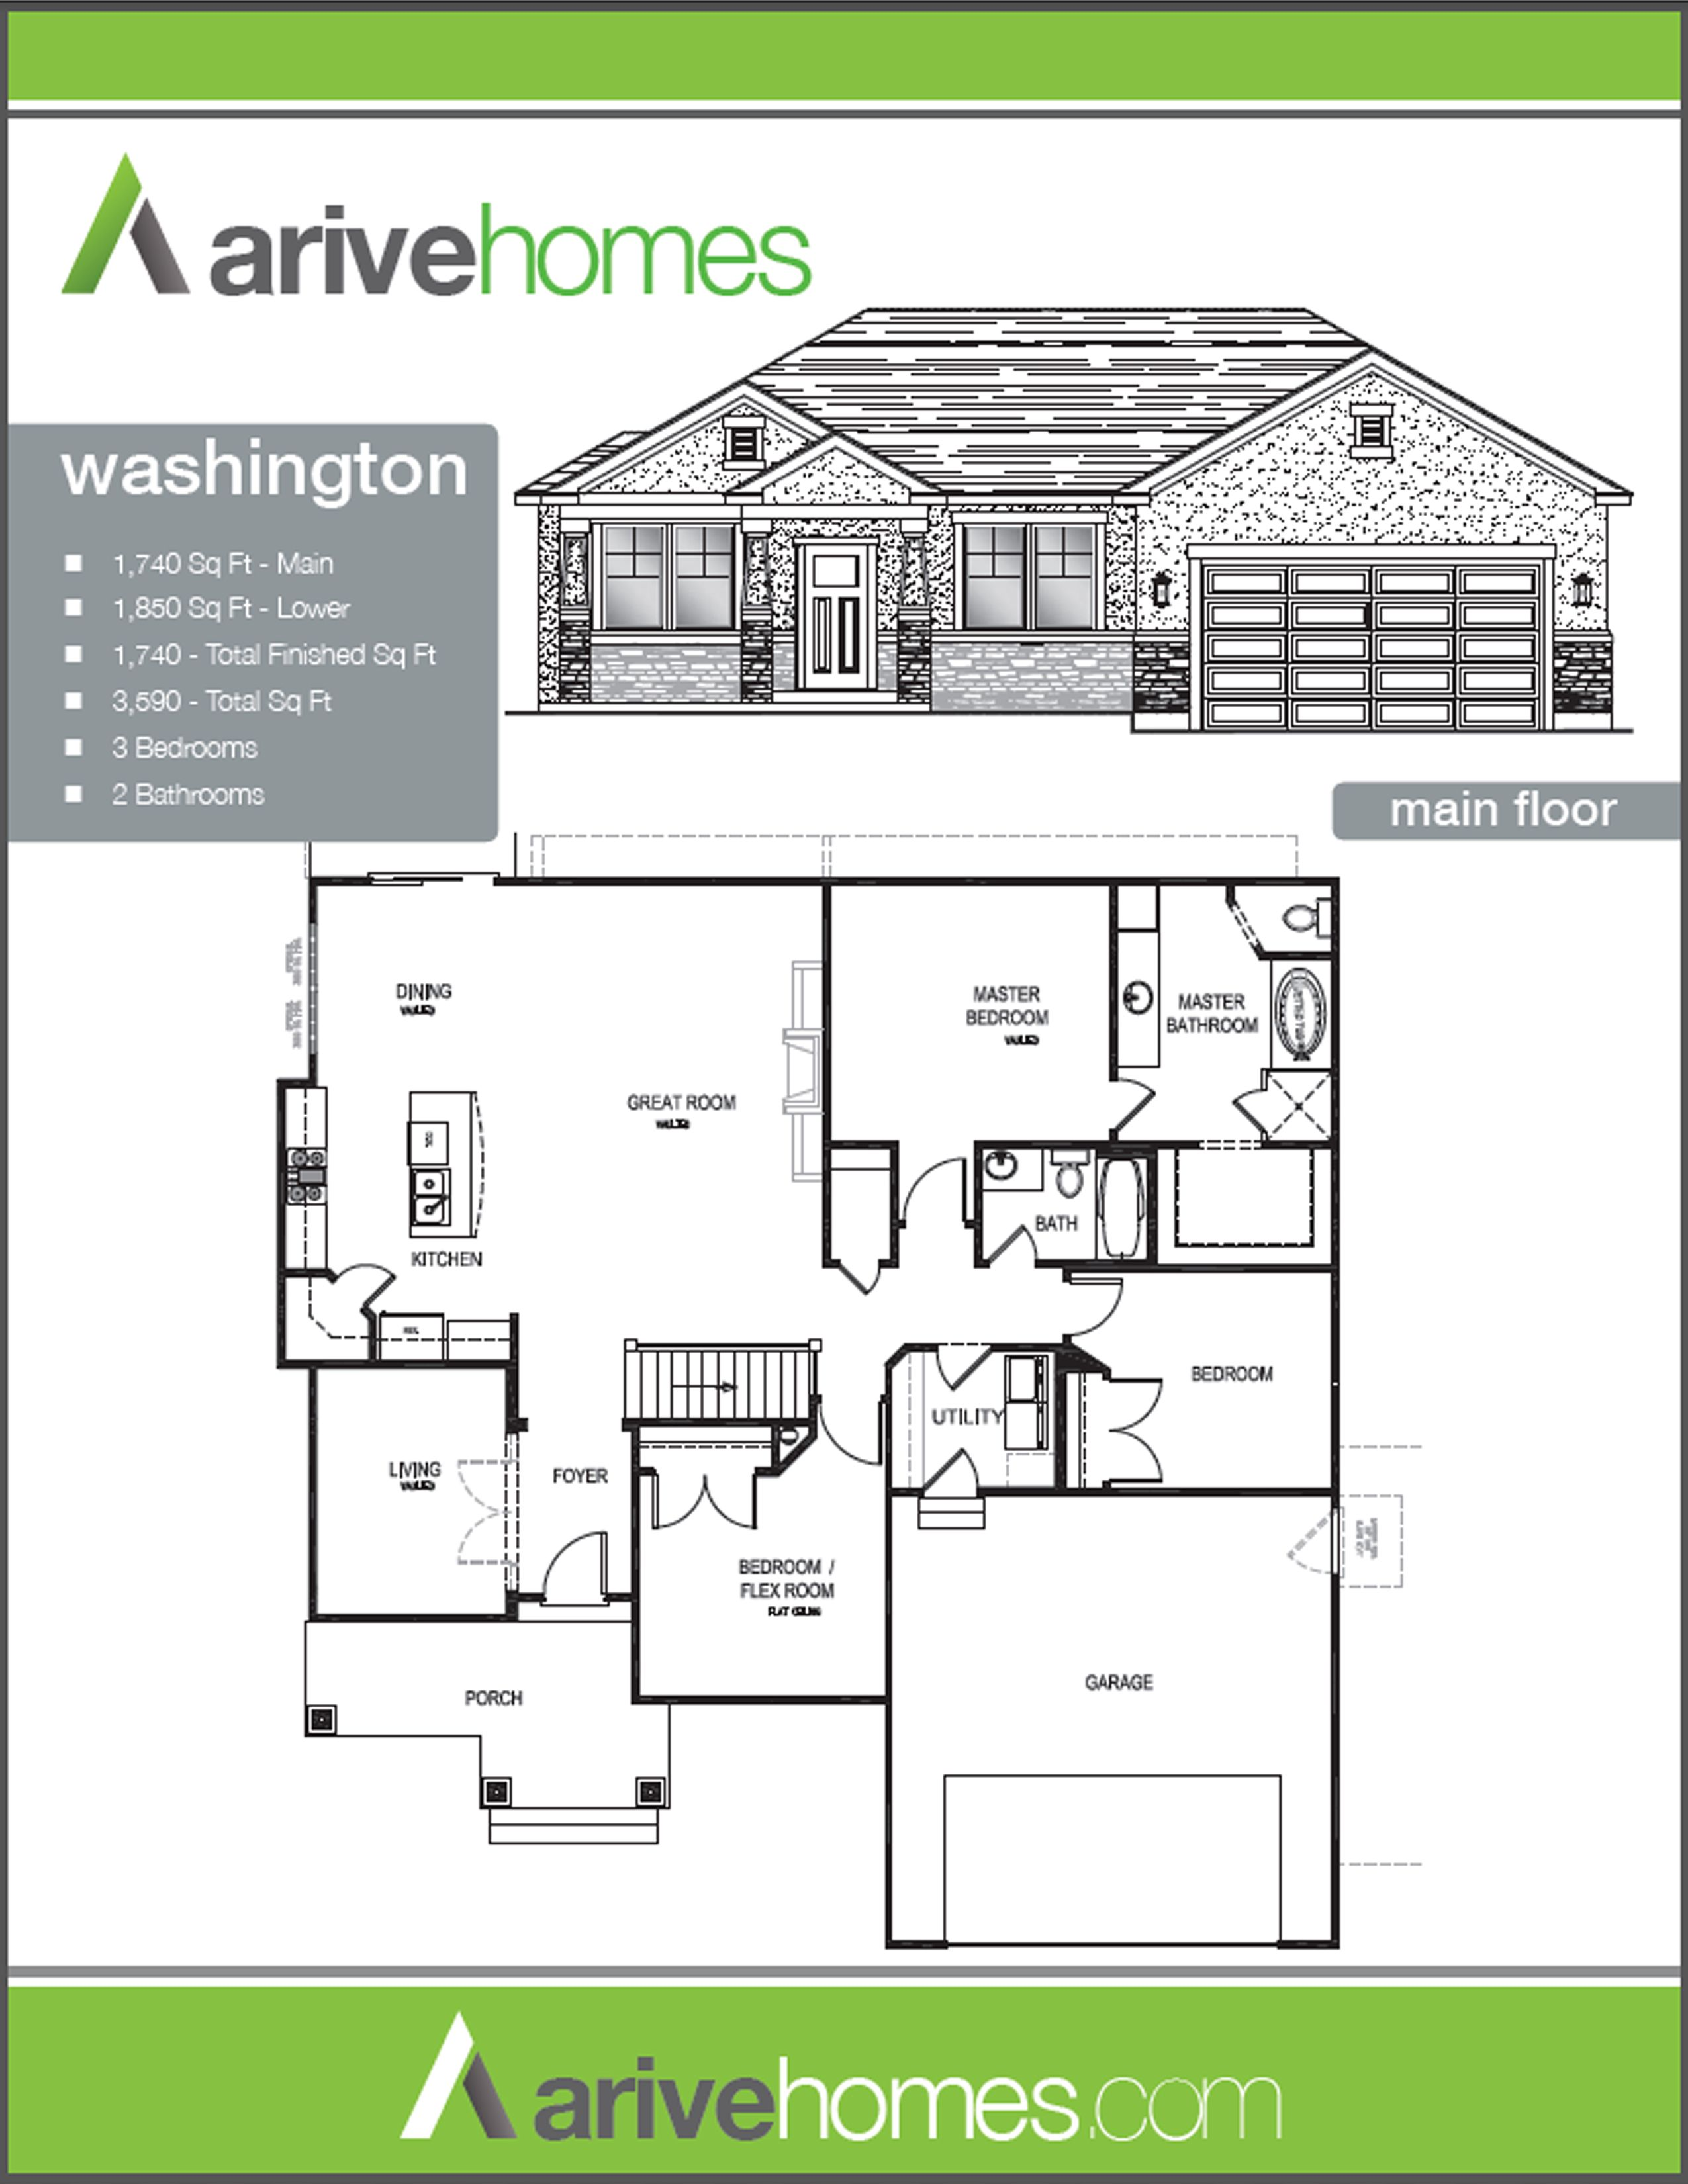 Arive homes the washington main floor building  house plans also dream home pinterest rh